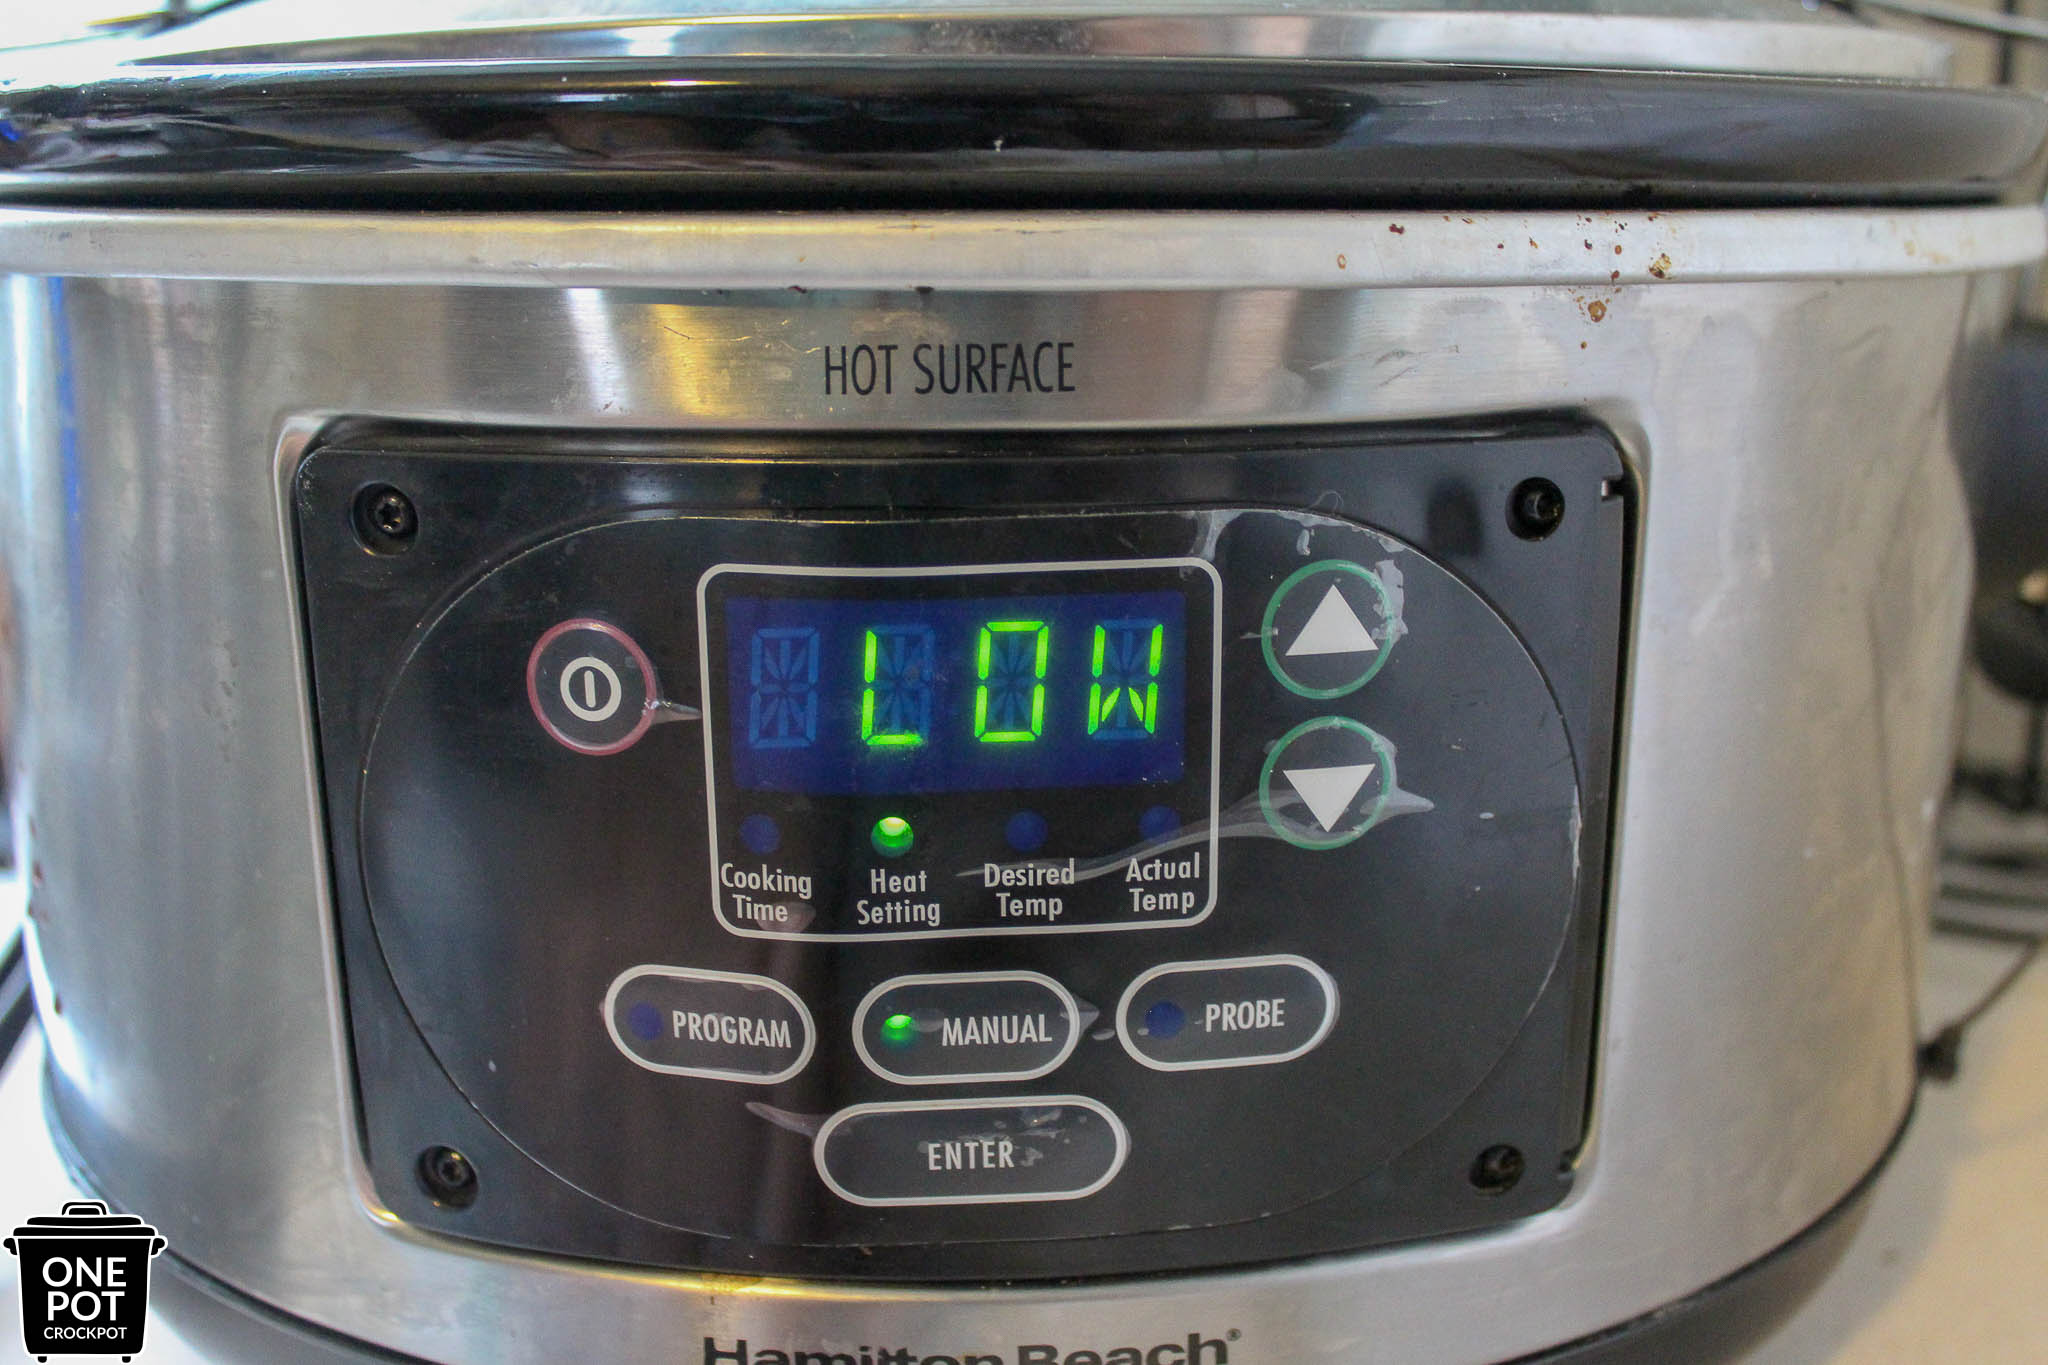 Tips for Buying the Perfect Slow Cooker